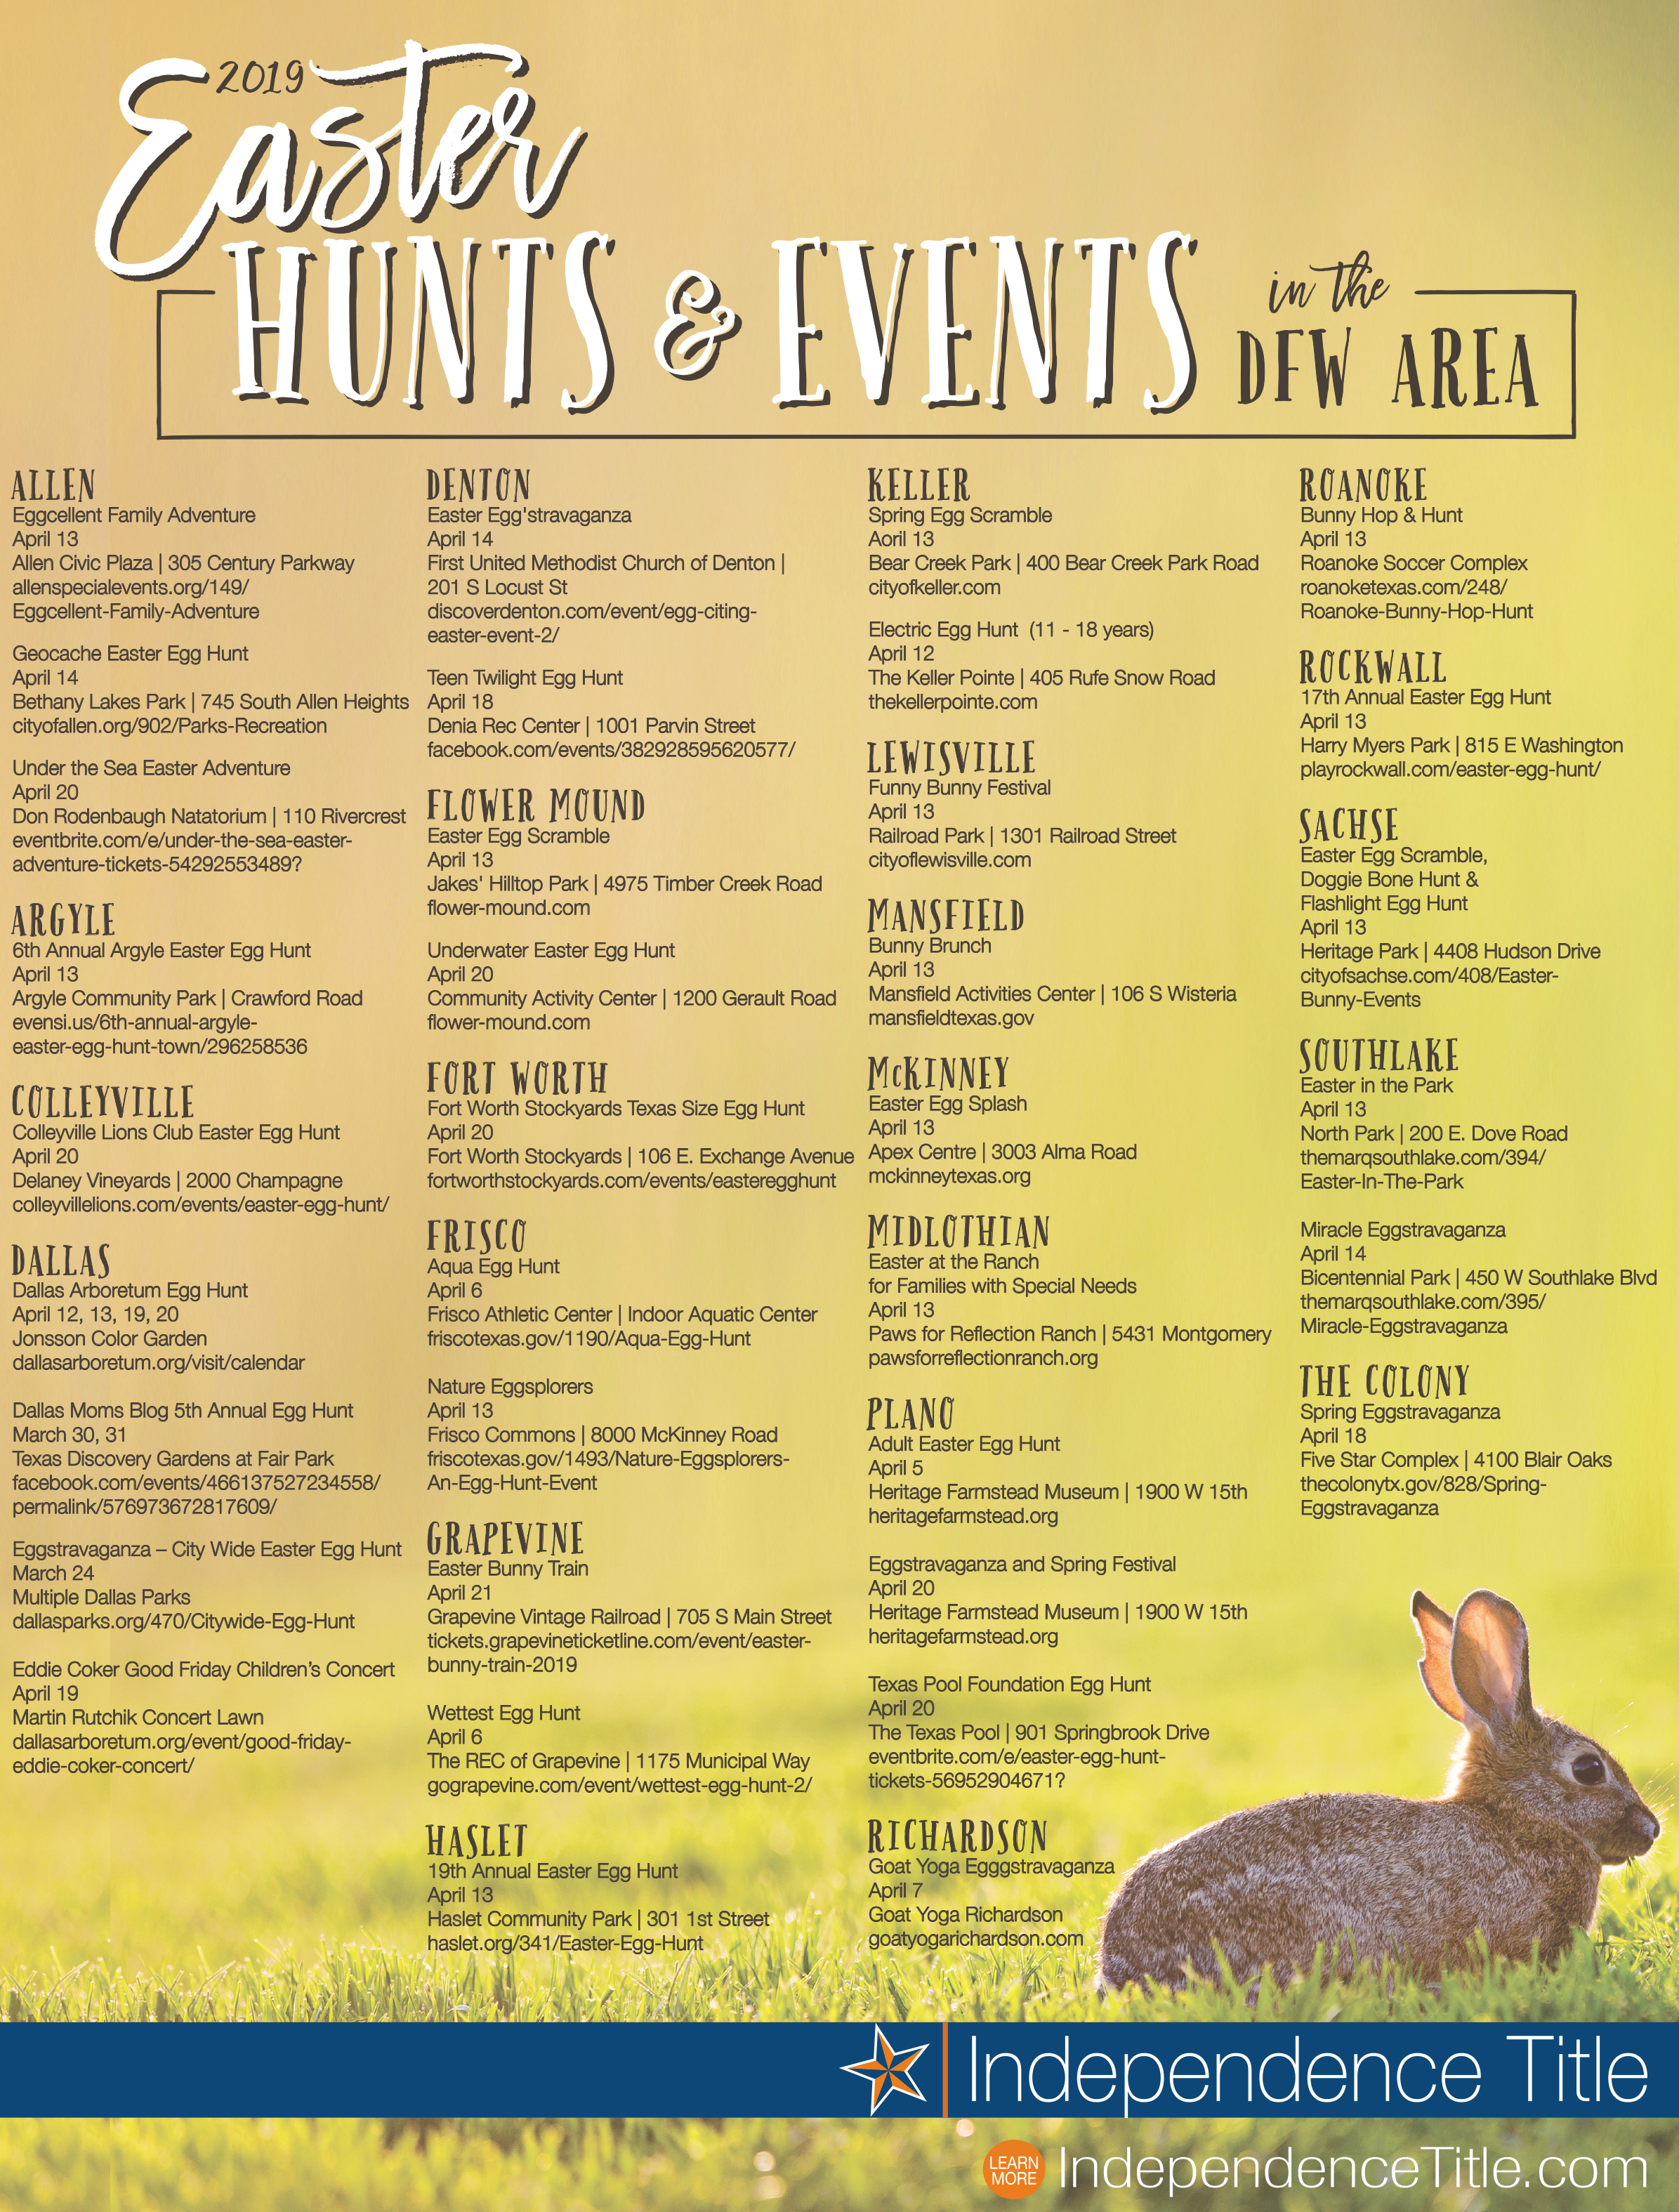 2019 Easter hunts and events in the dfw area